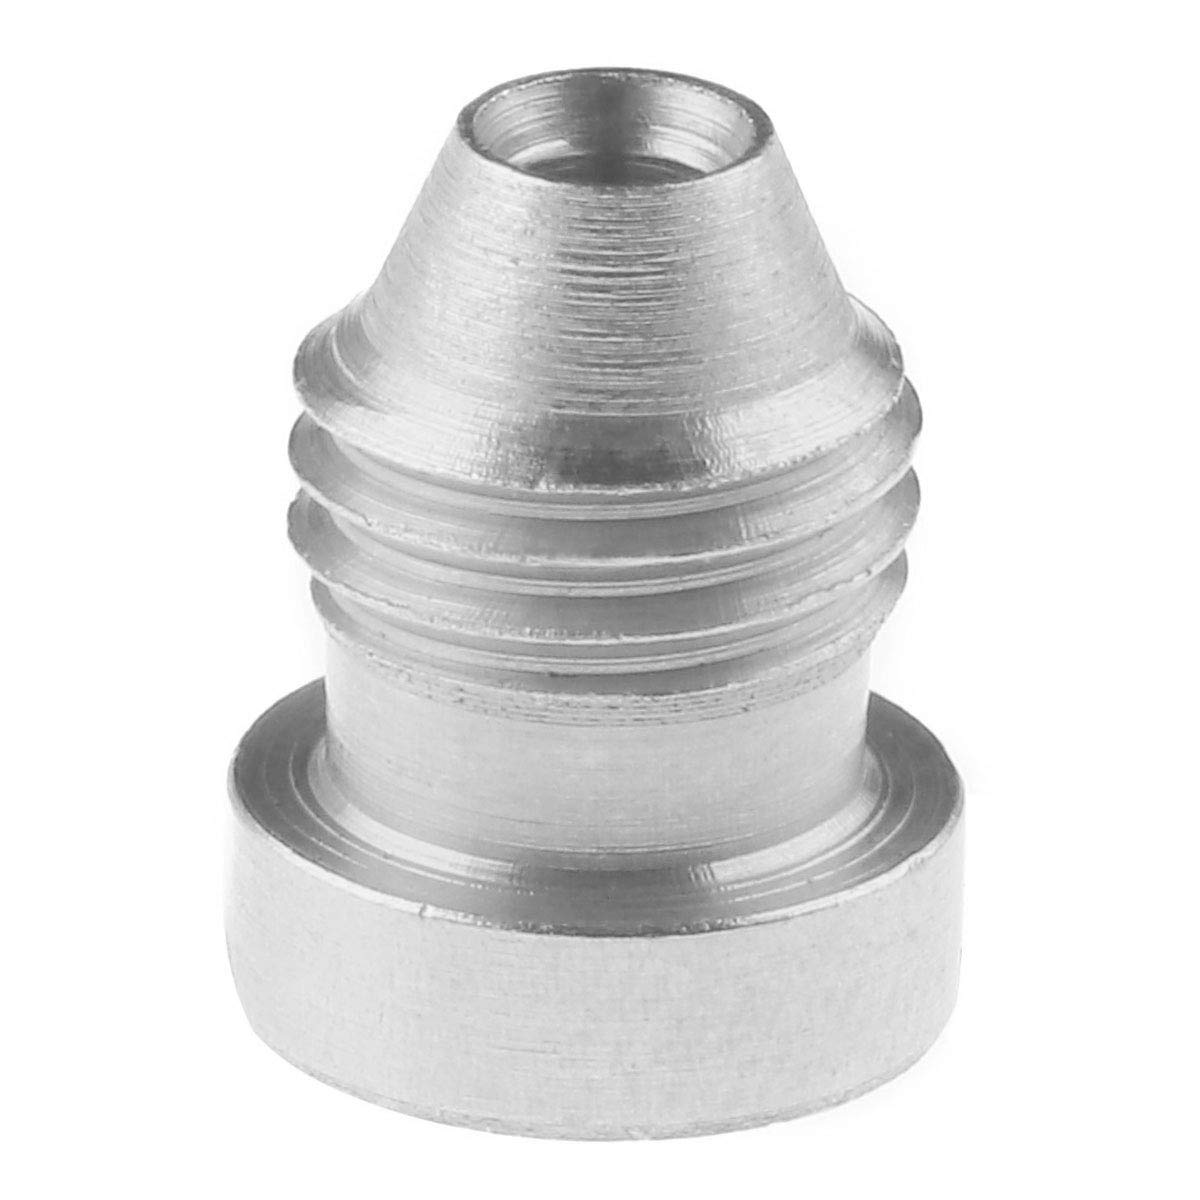 TiaoBug Foam Cannon Orifice Nozzle Tips Universal Replacement Brass Thread Nozzle for Snow Foam Lance Silver 0.05 inch by TiaoBug (Image #1)